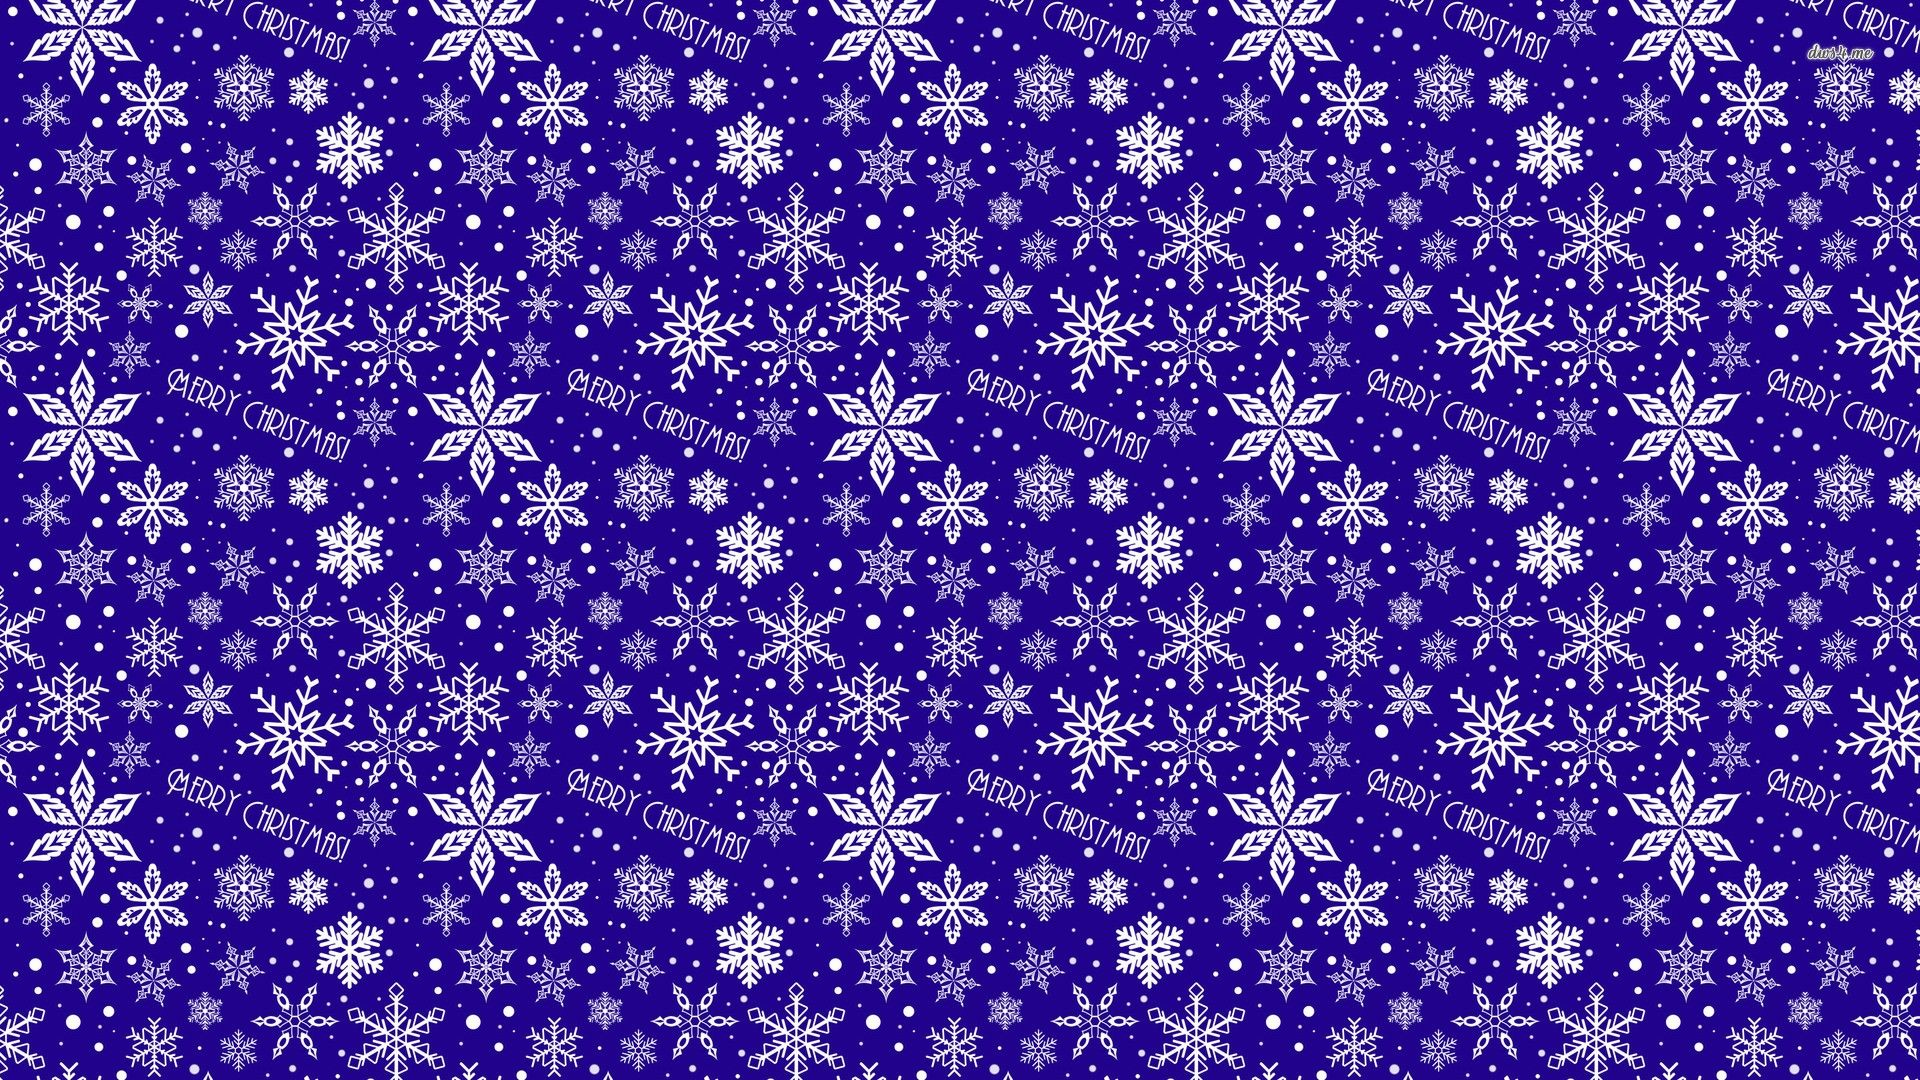 New Year With Snowflakes good wallpaper hd